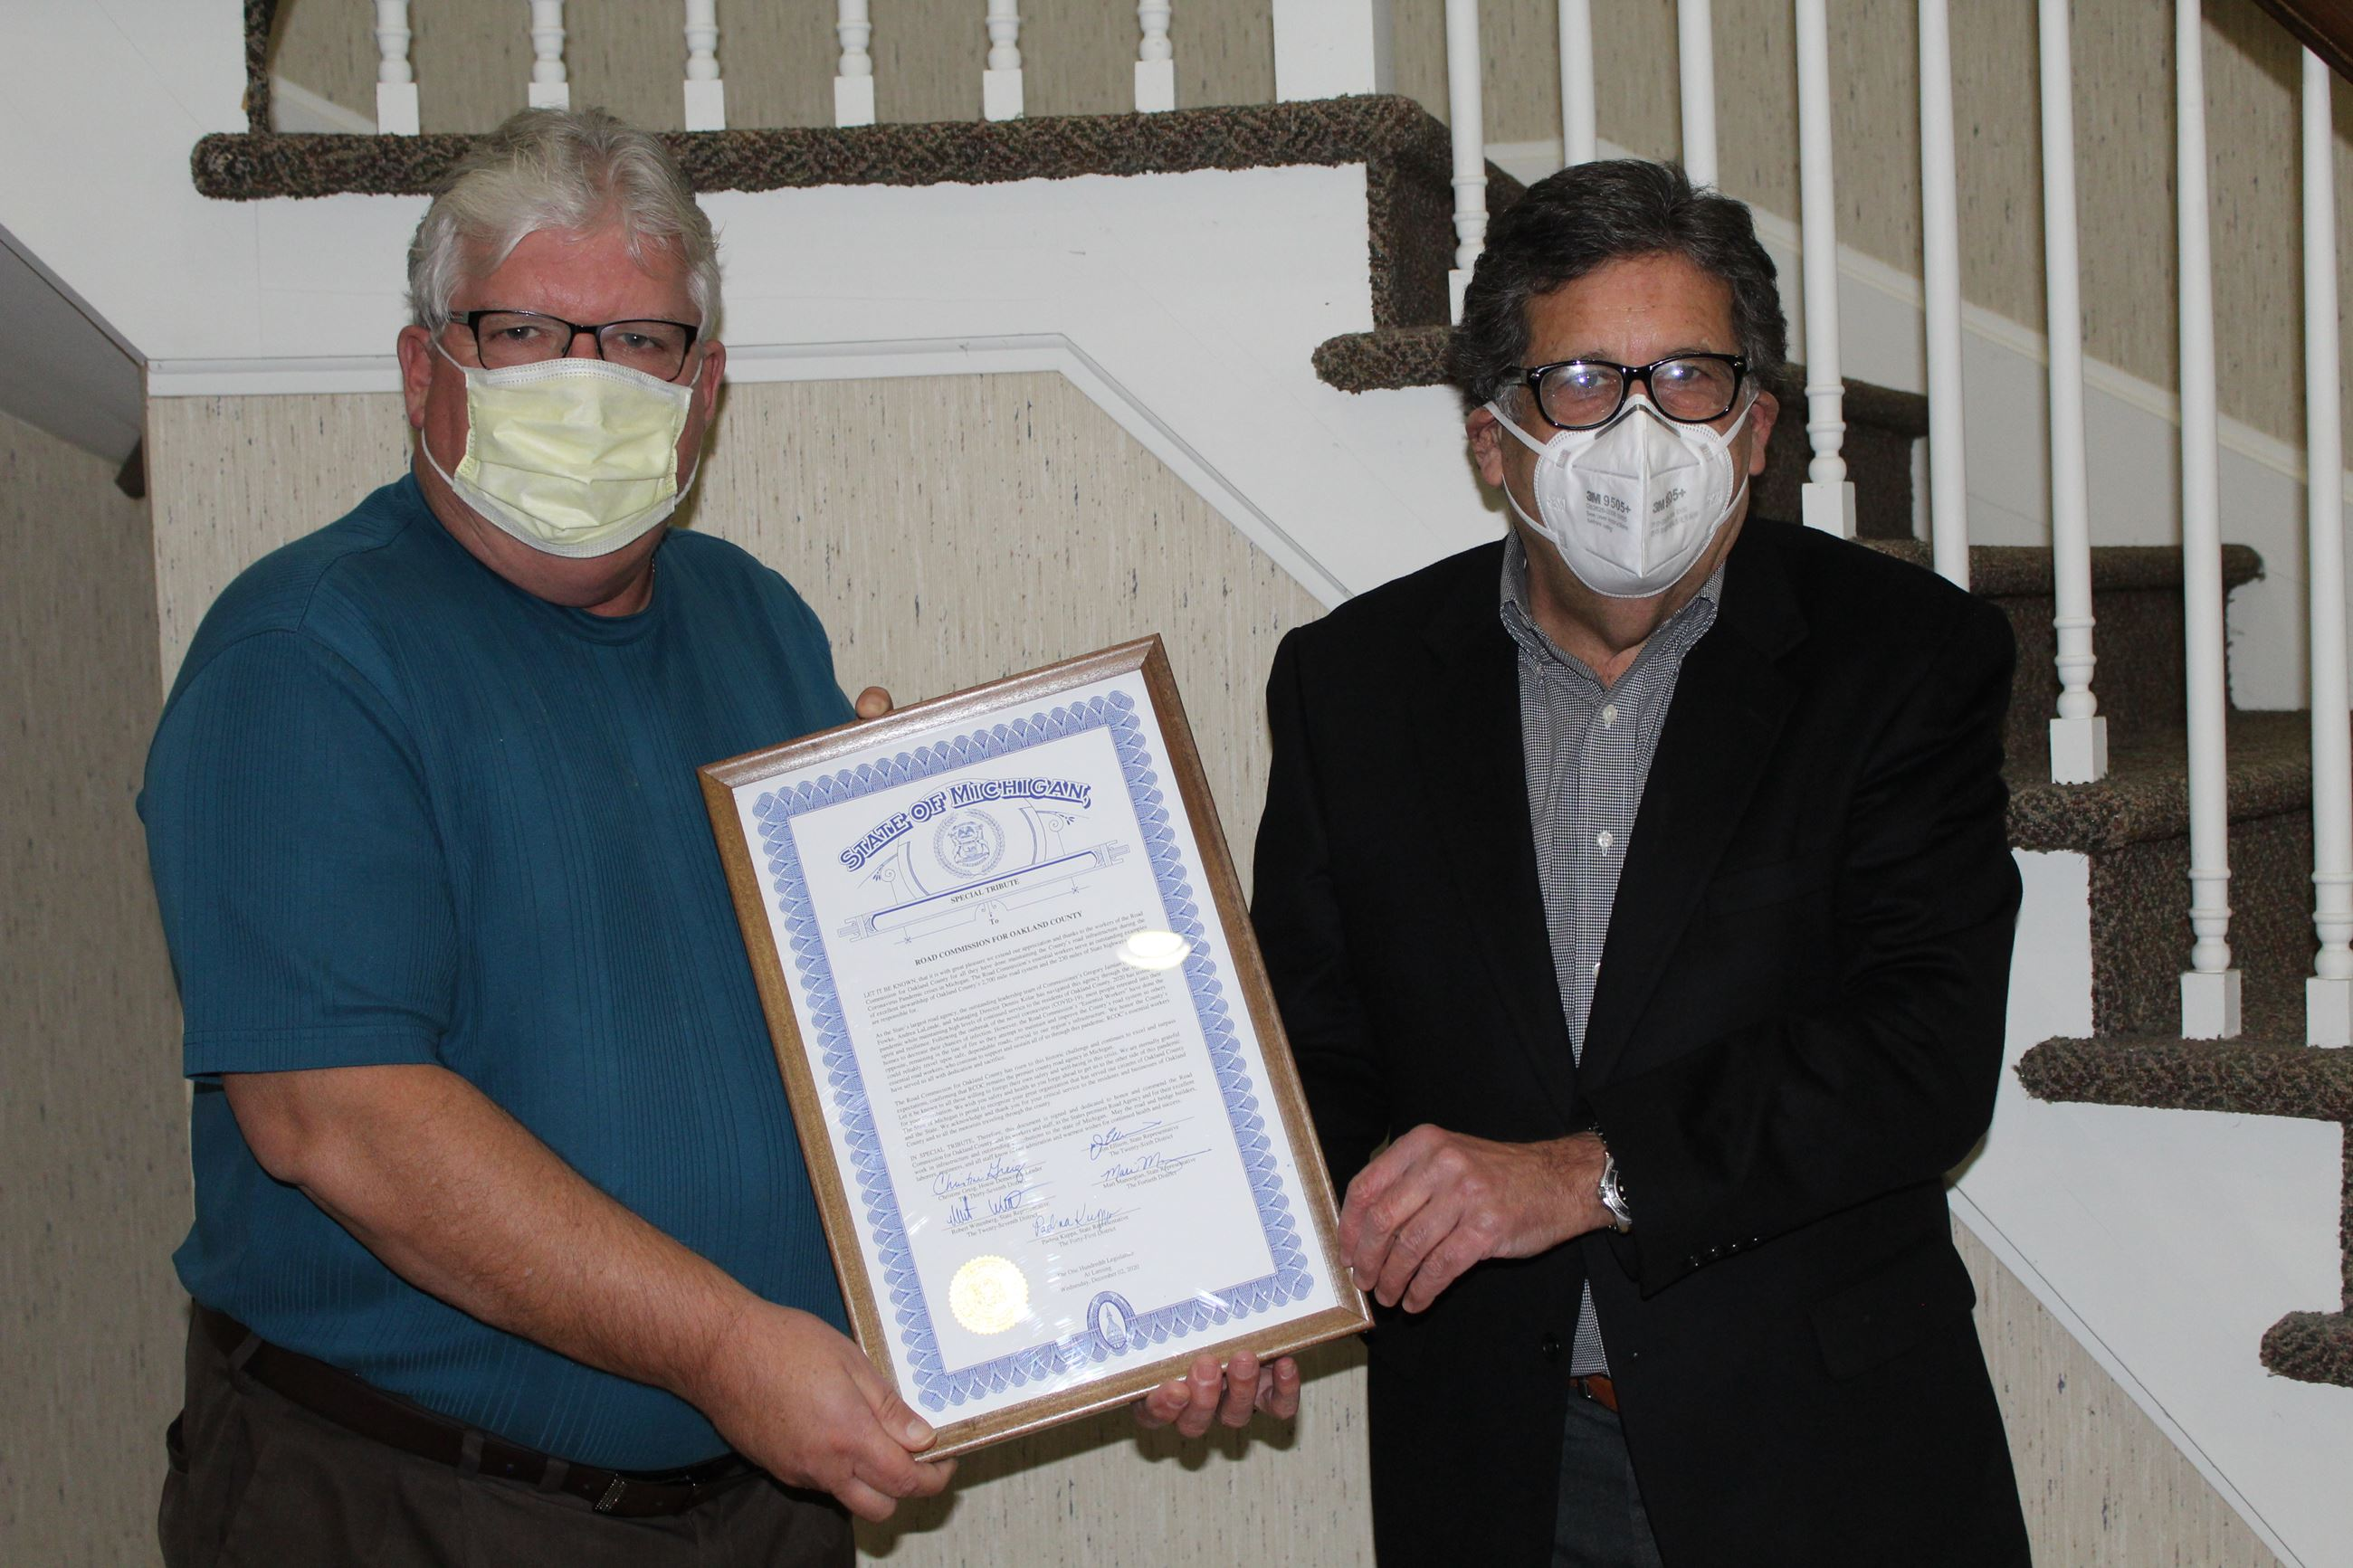 Greg Jamian (right) and Dennis Kolar display state tribute recognizing R.C.O.C. workers during pande